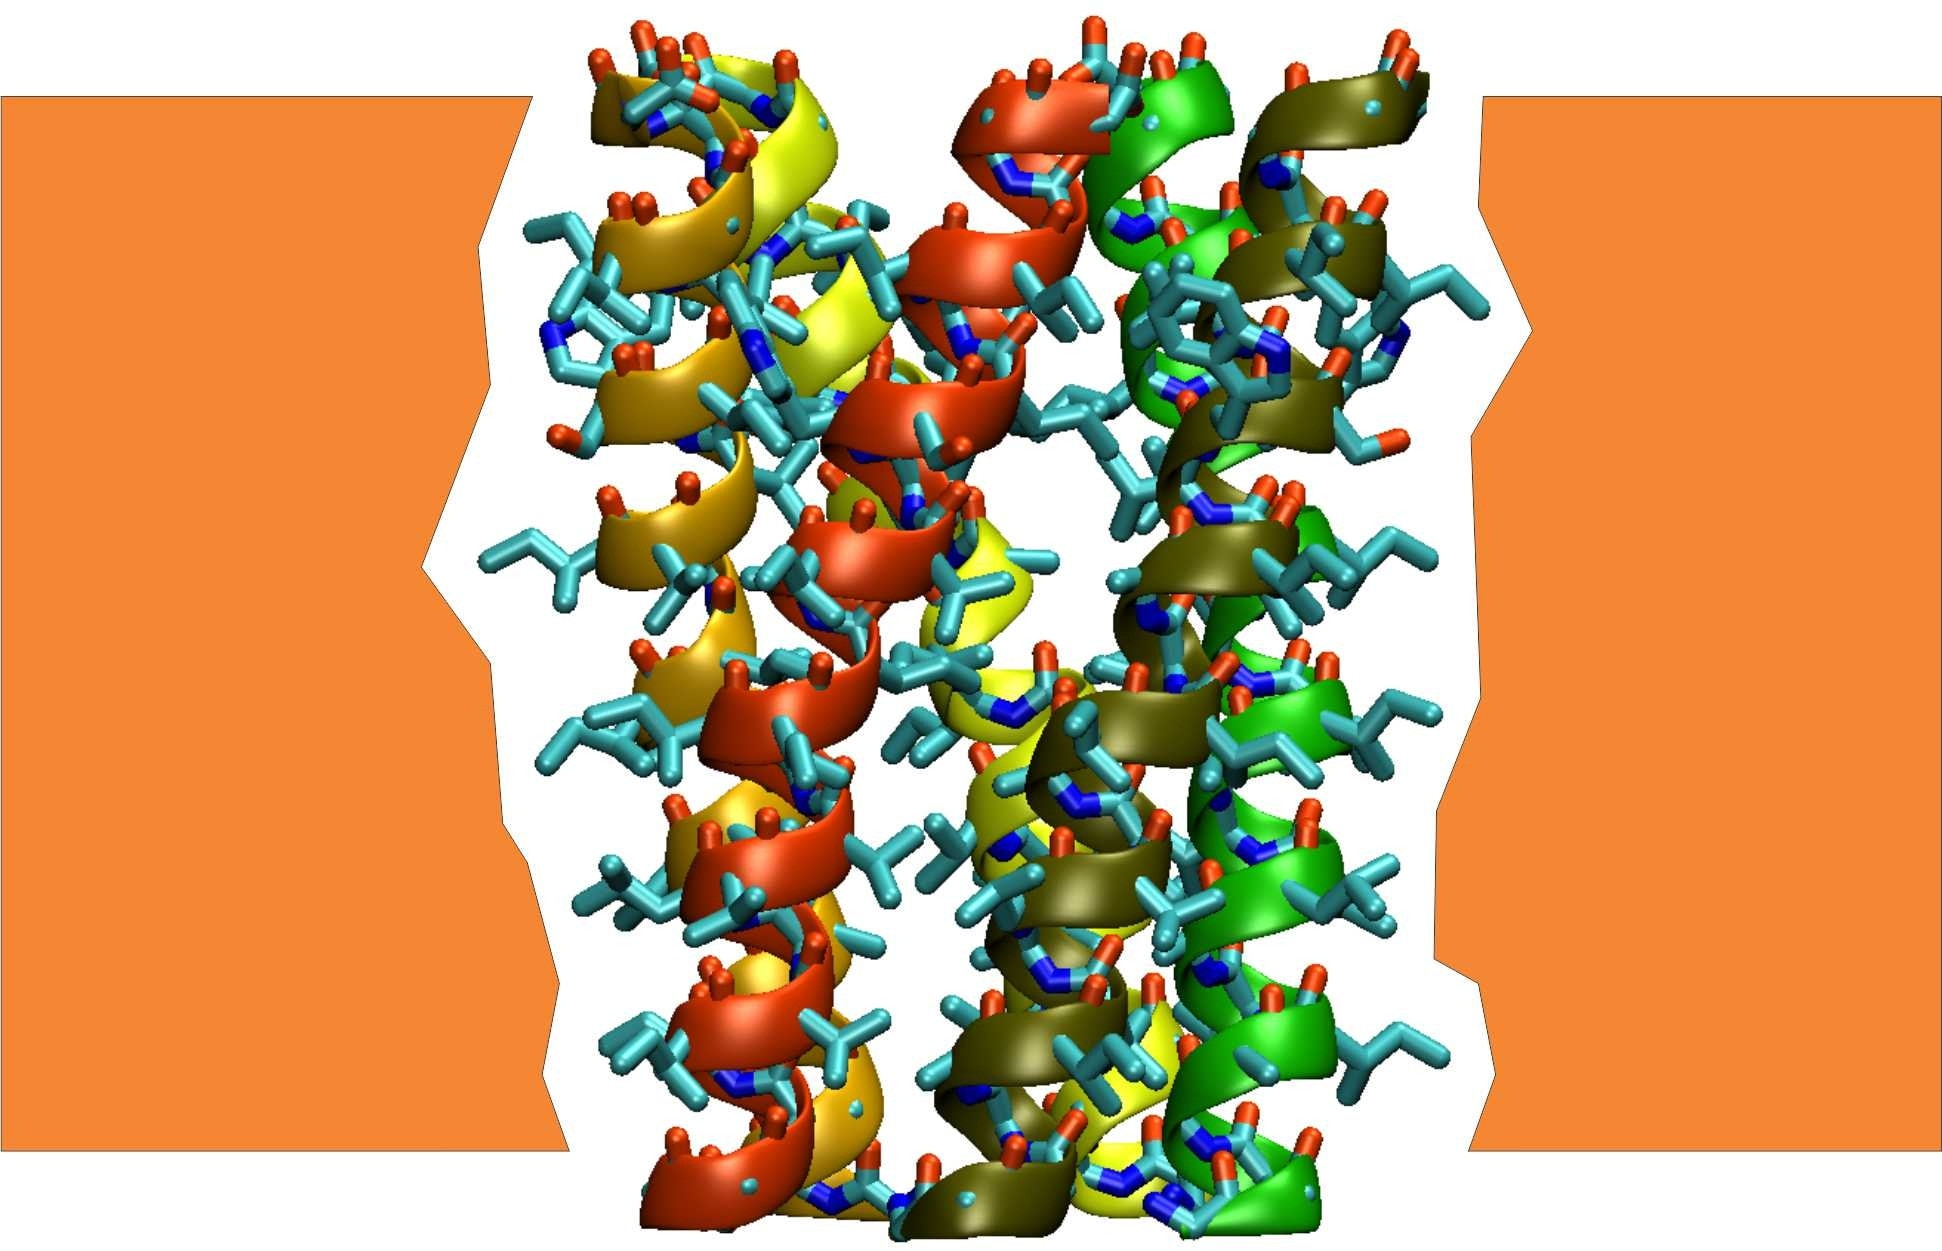 Structural model for a pentameric assembly of transmembrane segments of the HIV-1 Vpu protein